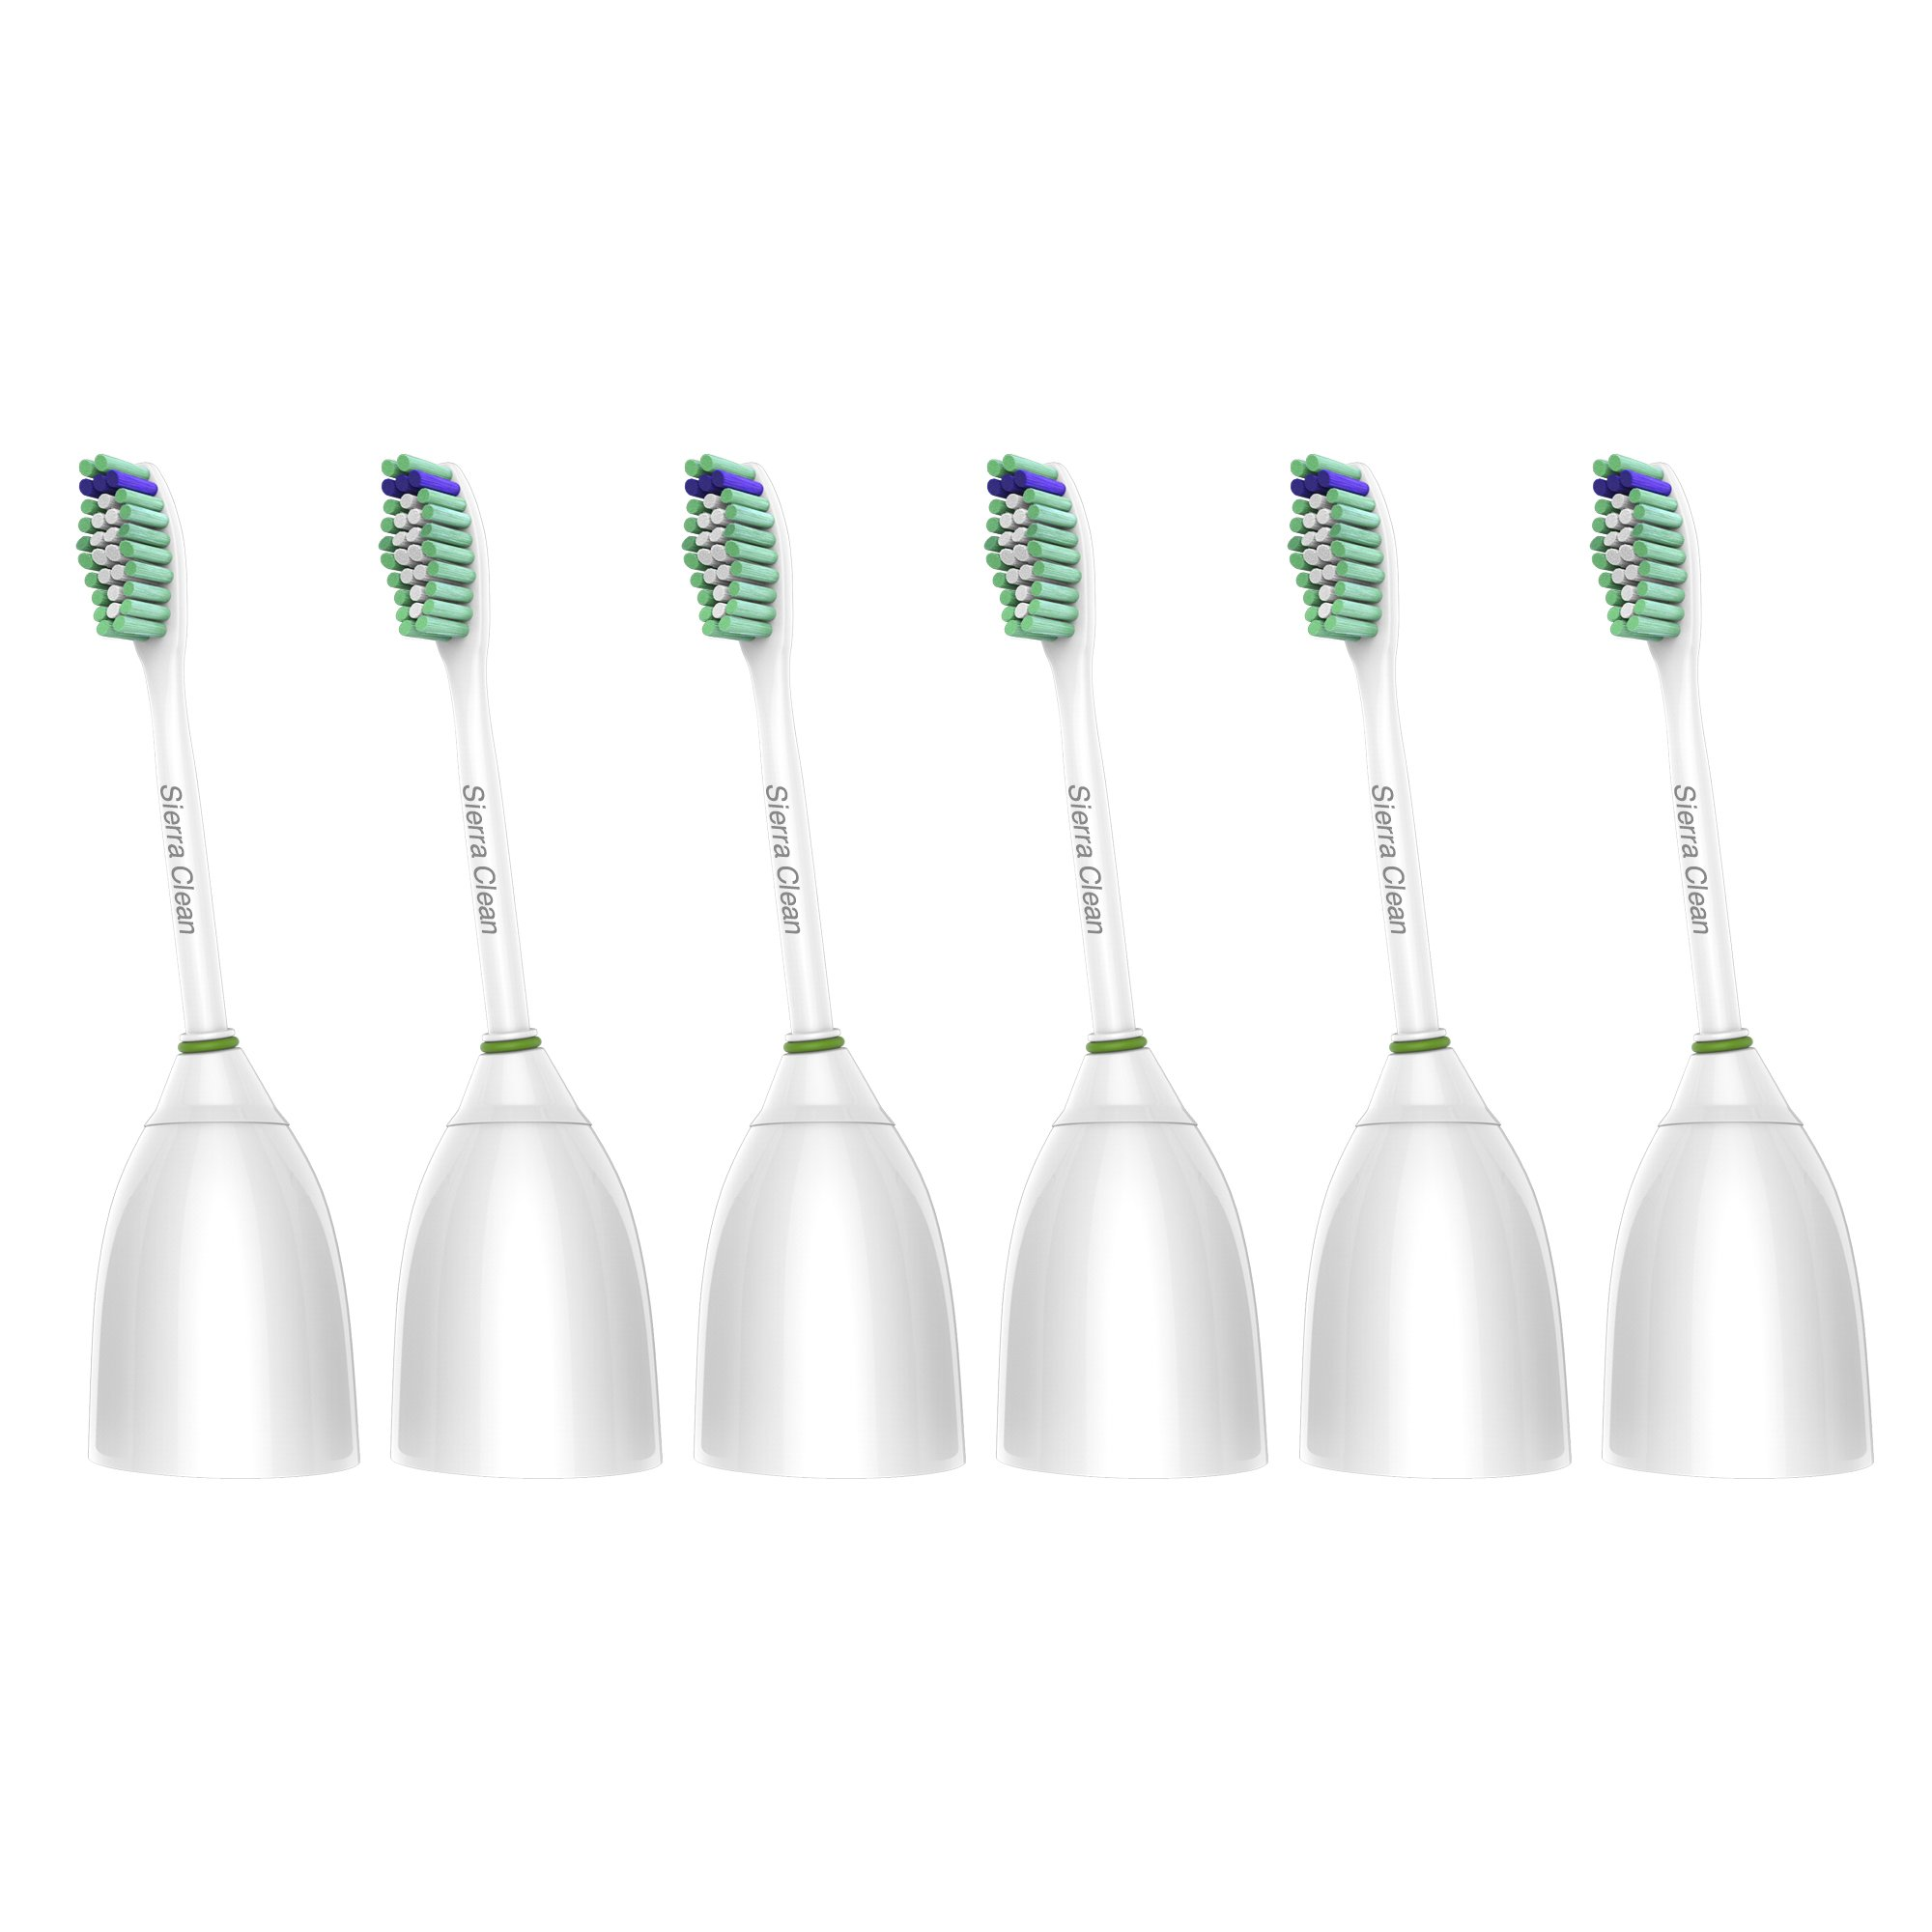 Sierra Clean Premium Standard Size Replacement Toothbrush Heads for Philips Sonicare e-Series HX7022, 6 pack, fits Sonicare Advance, CleanCare, Elite, Essence and Xtreme Philips Brush Handles